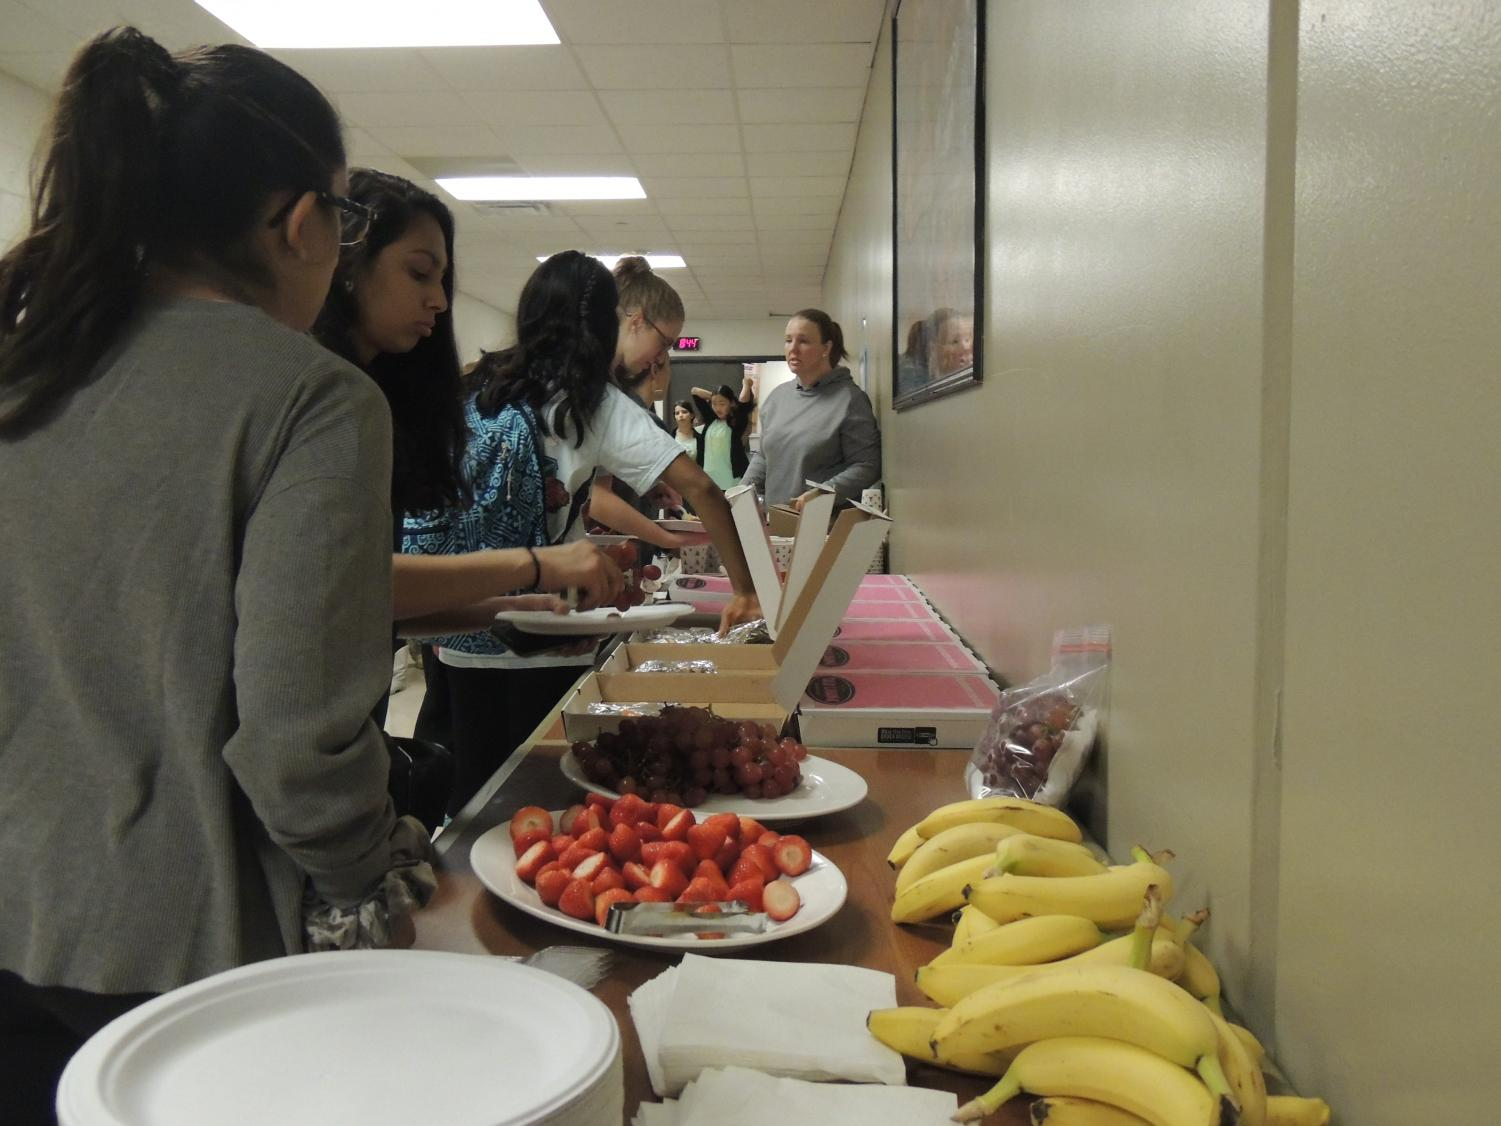 Students+go+through+the+breakfast+line+after+their+morning+rehearsal.+Parent+volunteers+brought+many+food+items+such+as+fresh+fruits%2C+breakfast+tacos%2C+and+drinks+for+the+dancers+to+eat.